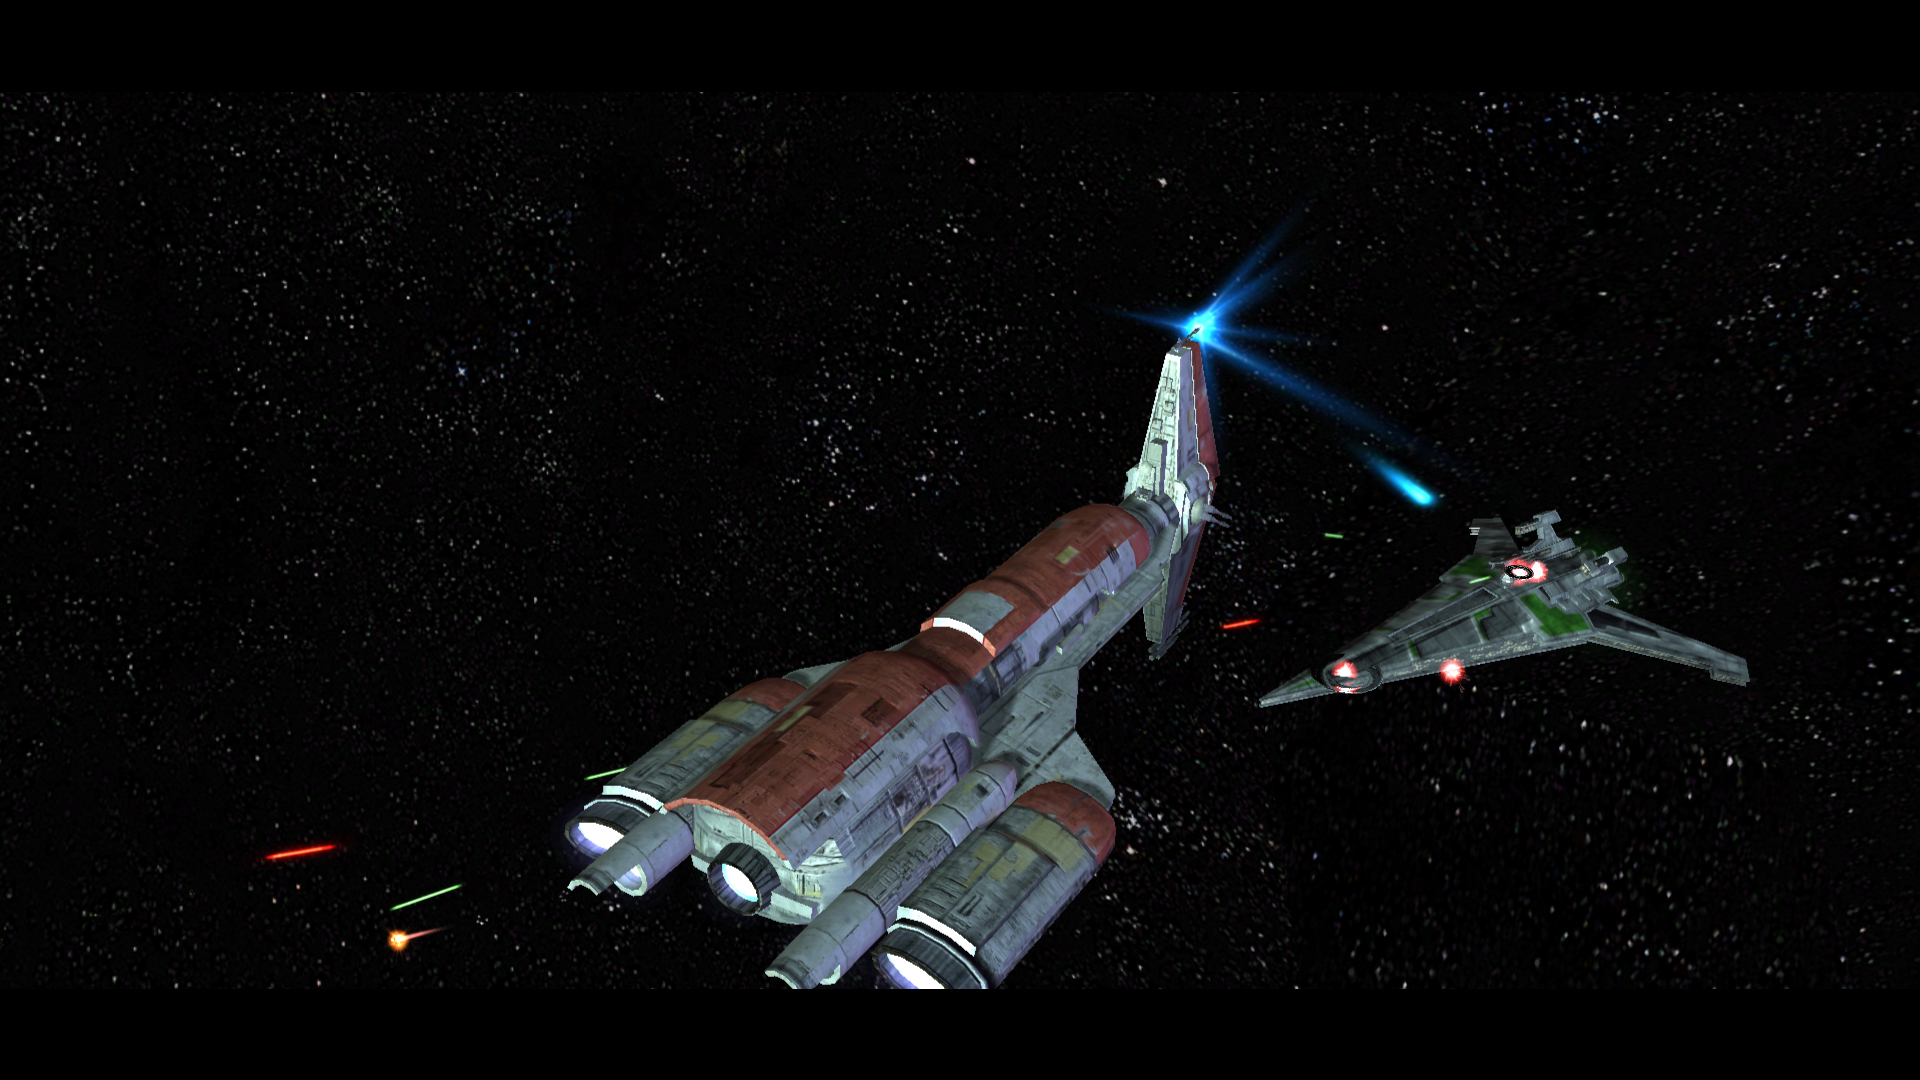 New Nawrocki Skin For The Hammerhead Image Old Republic At War Mod For Star Wars Empire At War Forces Of Corruption Mod Db